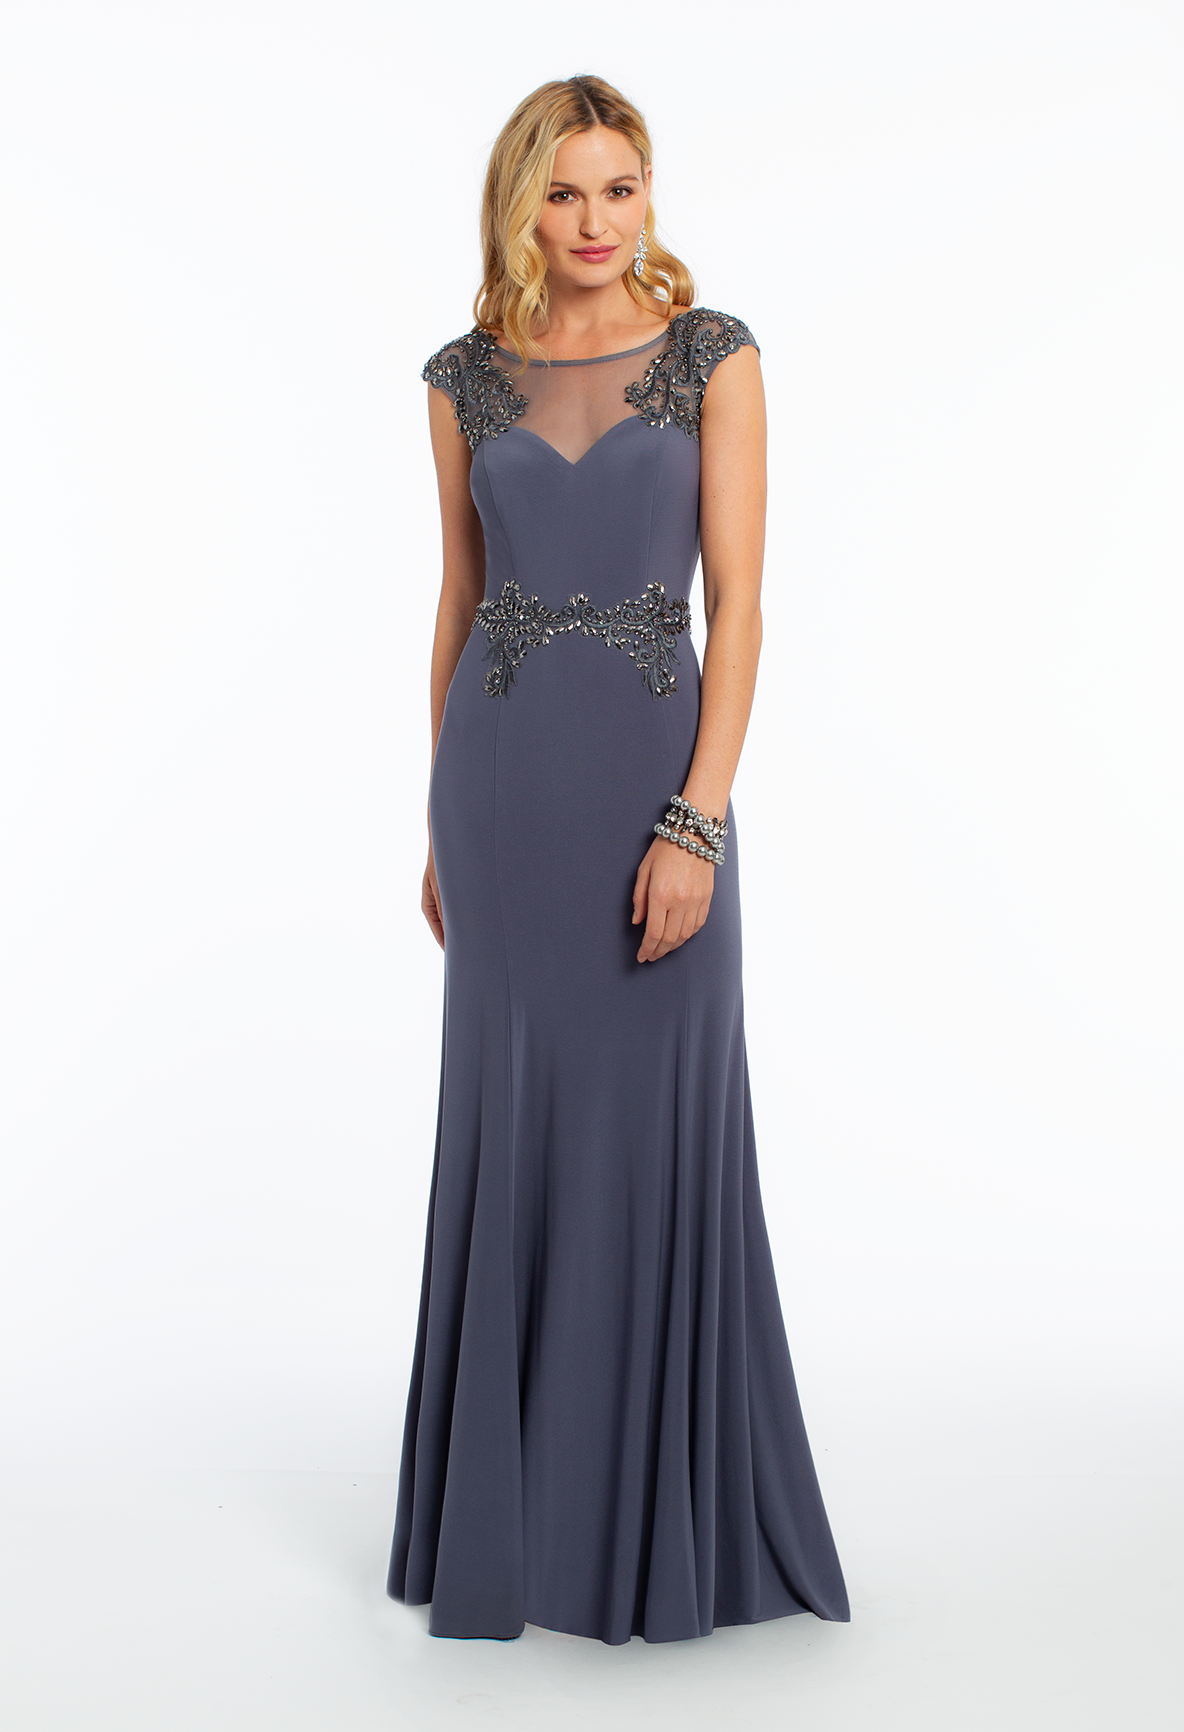 Capture their attention in a luxe illusion trend dress  while the illusion  neckline and fitted beaded bodice speak for themselves when it comes to  dazzling ... cc4837930